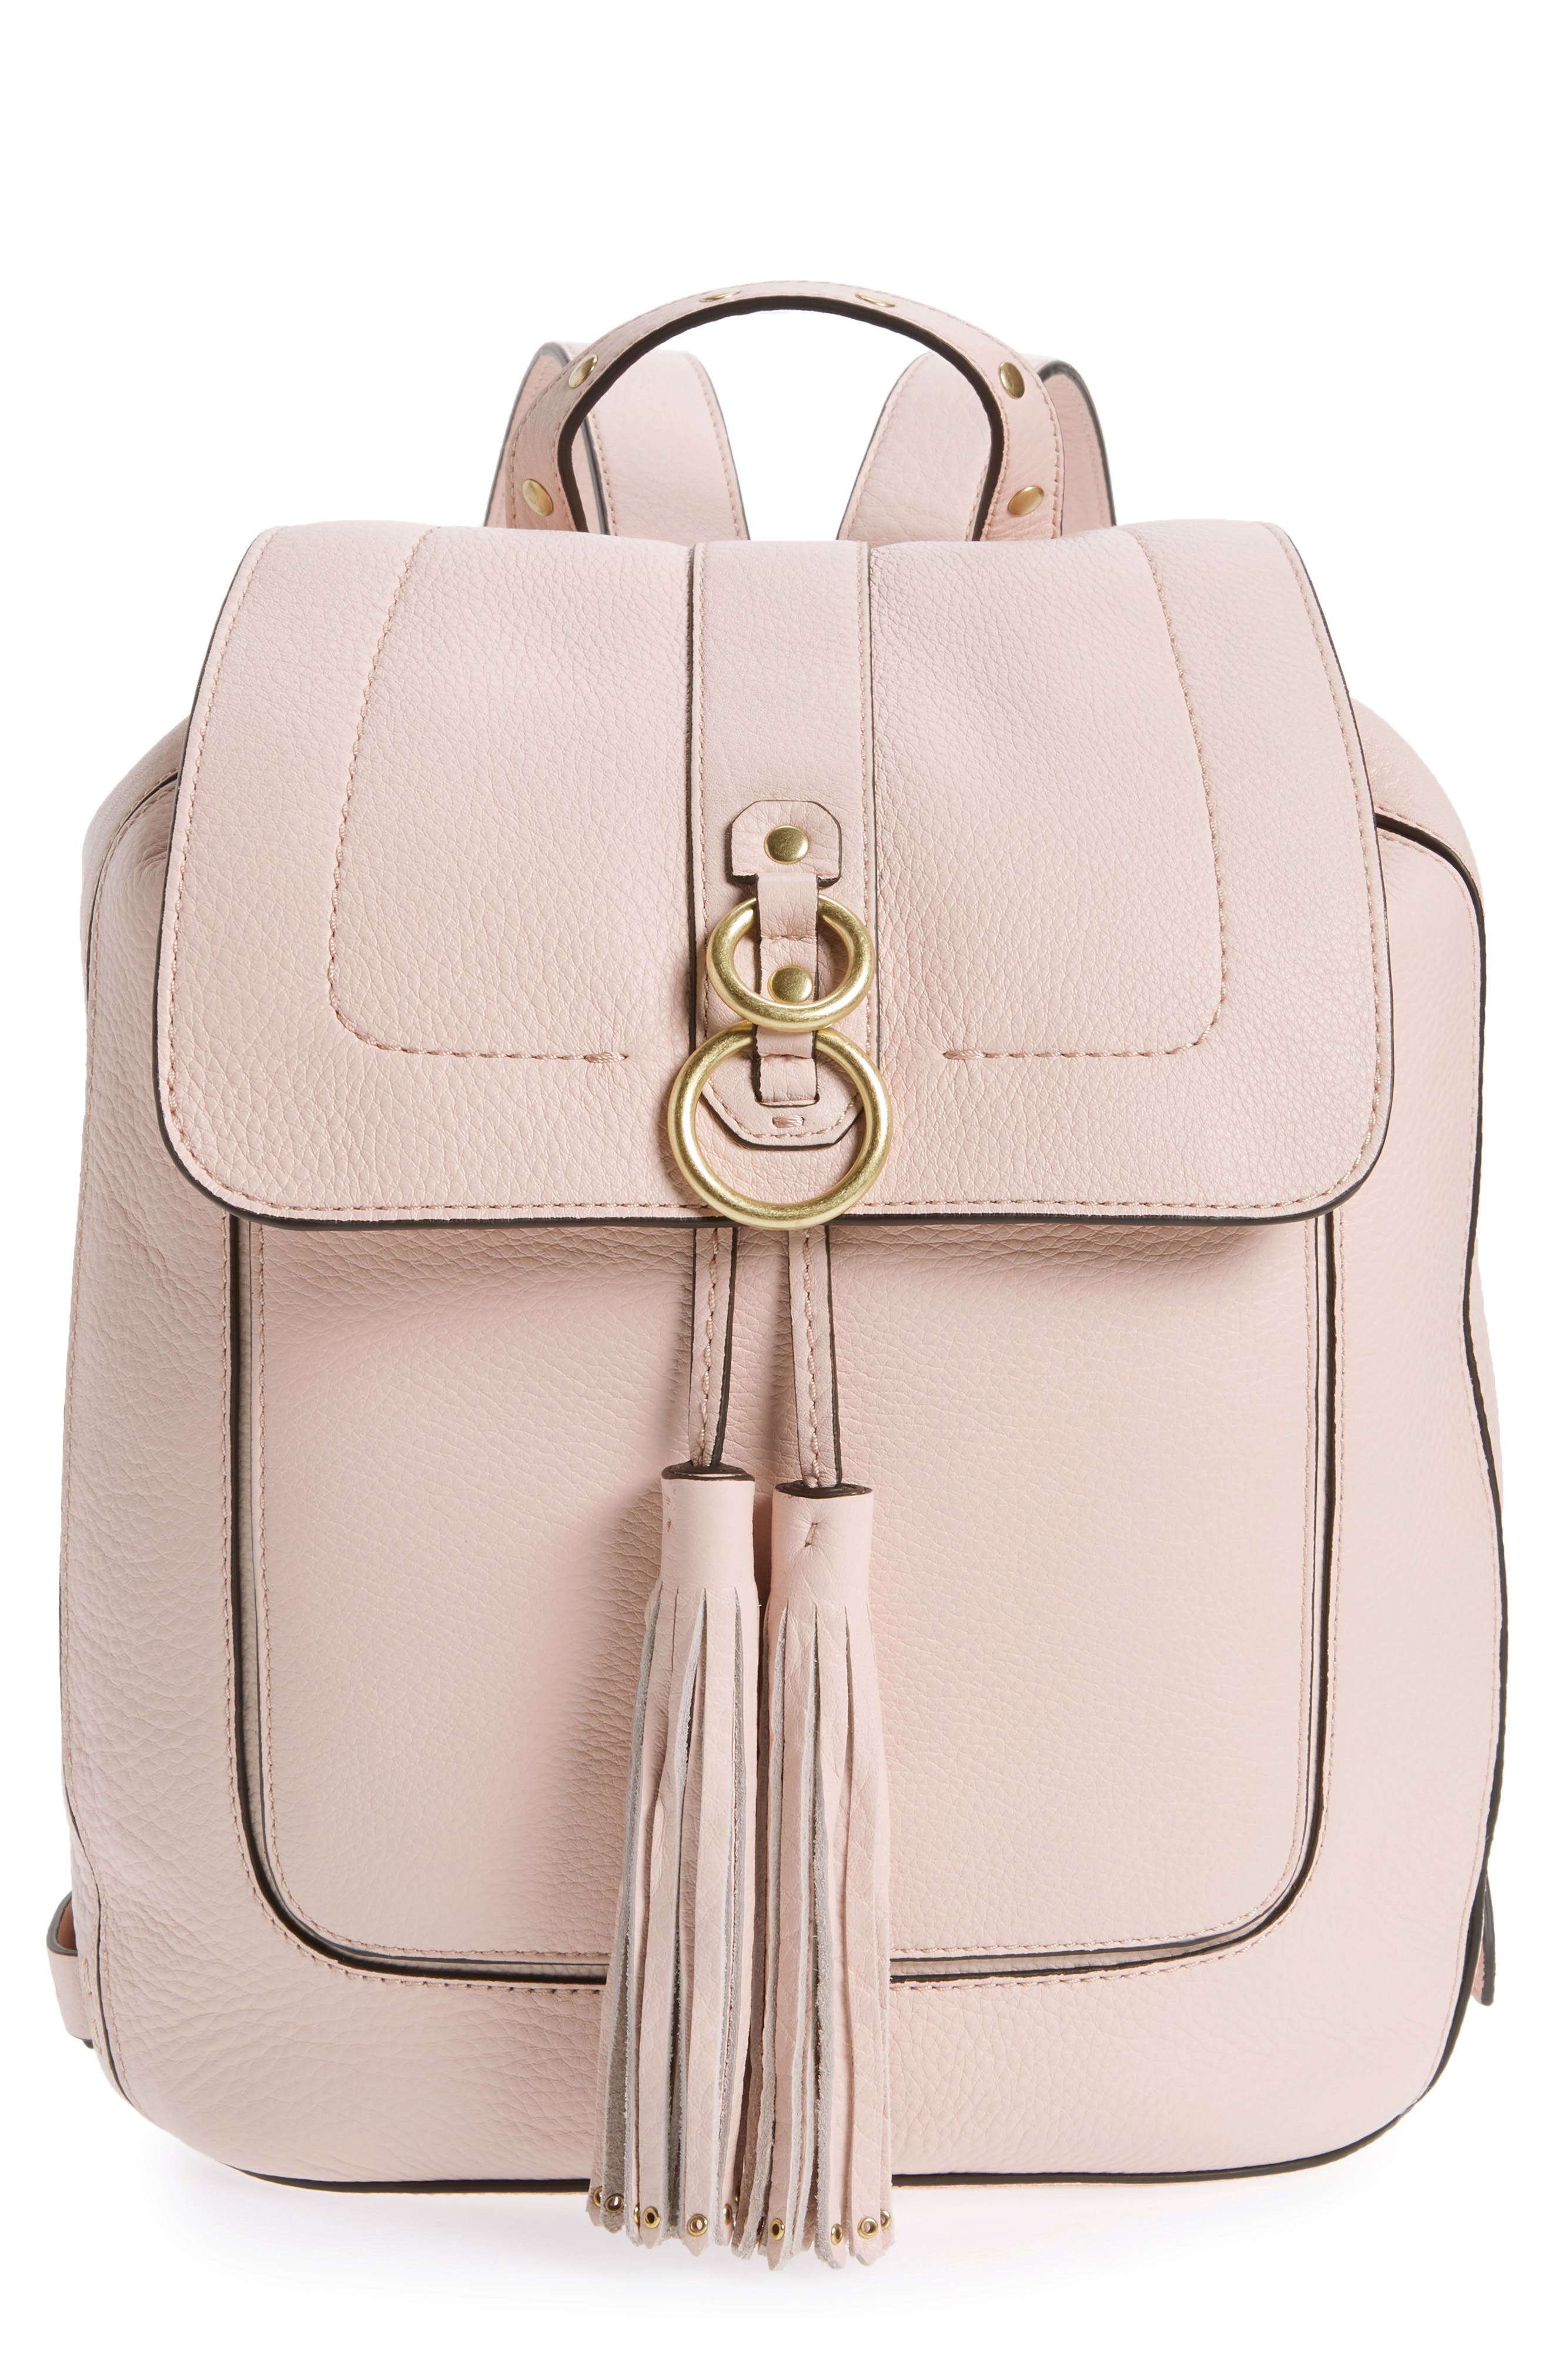 Cassidy RFID Pebbled Leather Backpack,                         Main,                         color, Peach Blush